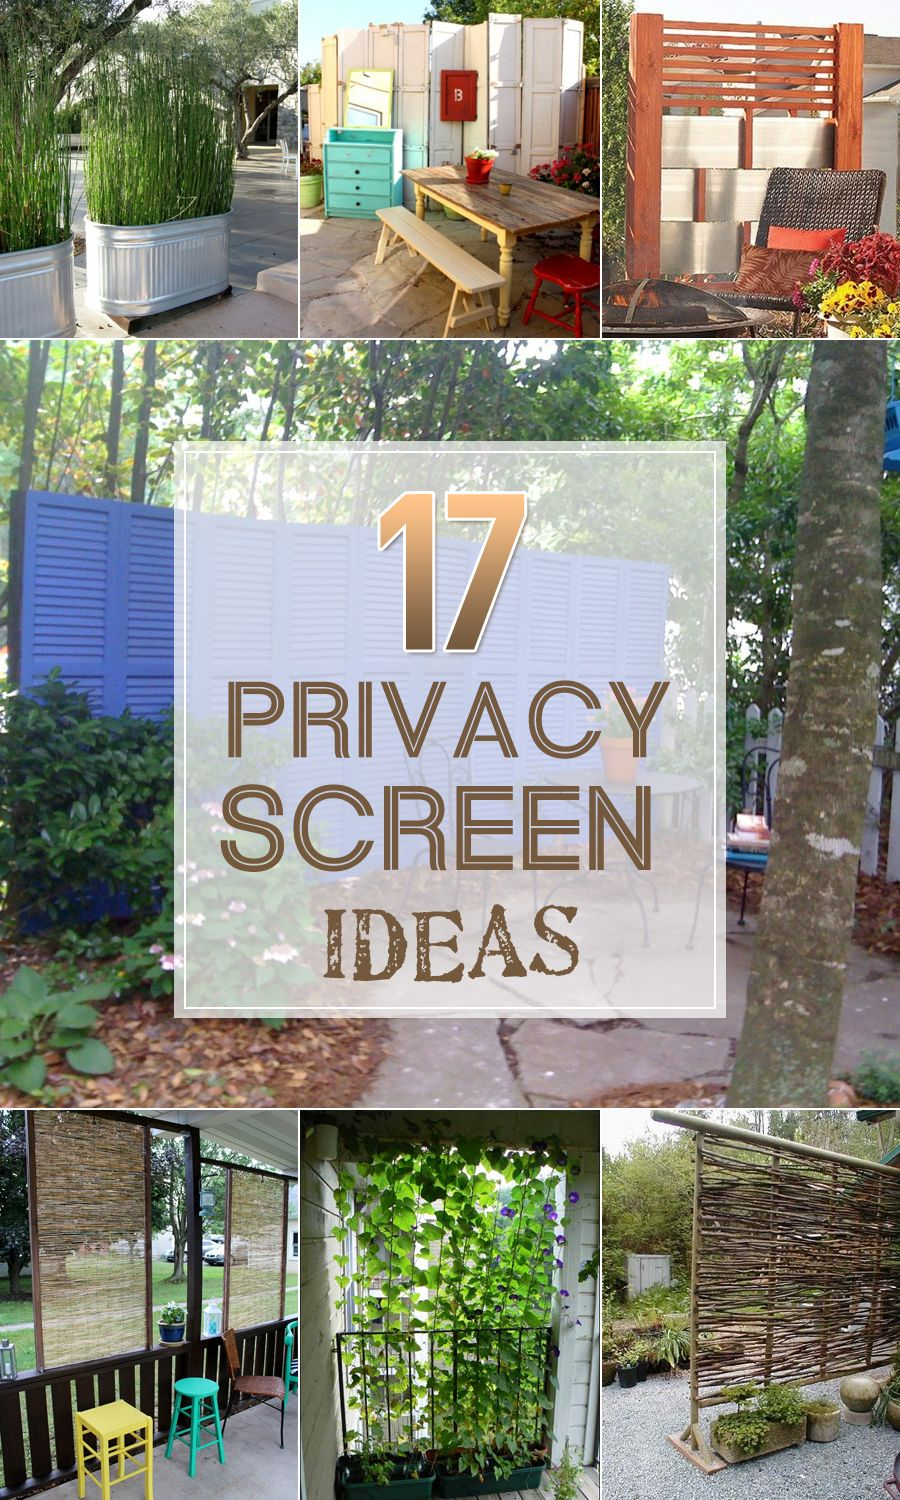 17 Privacy Screen Ideas Thatll Keep Your Neighbors From with The Most Amazing Privacy Screen Ideas for Backyard intended for Residence